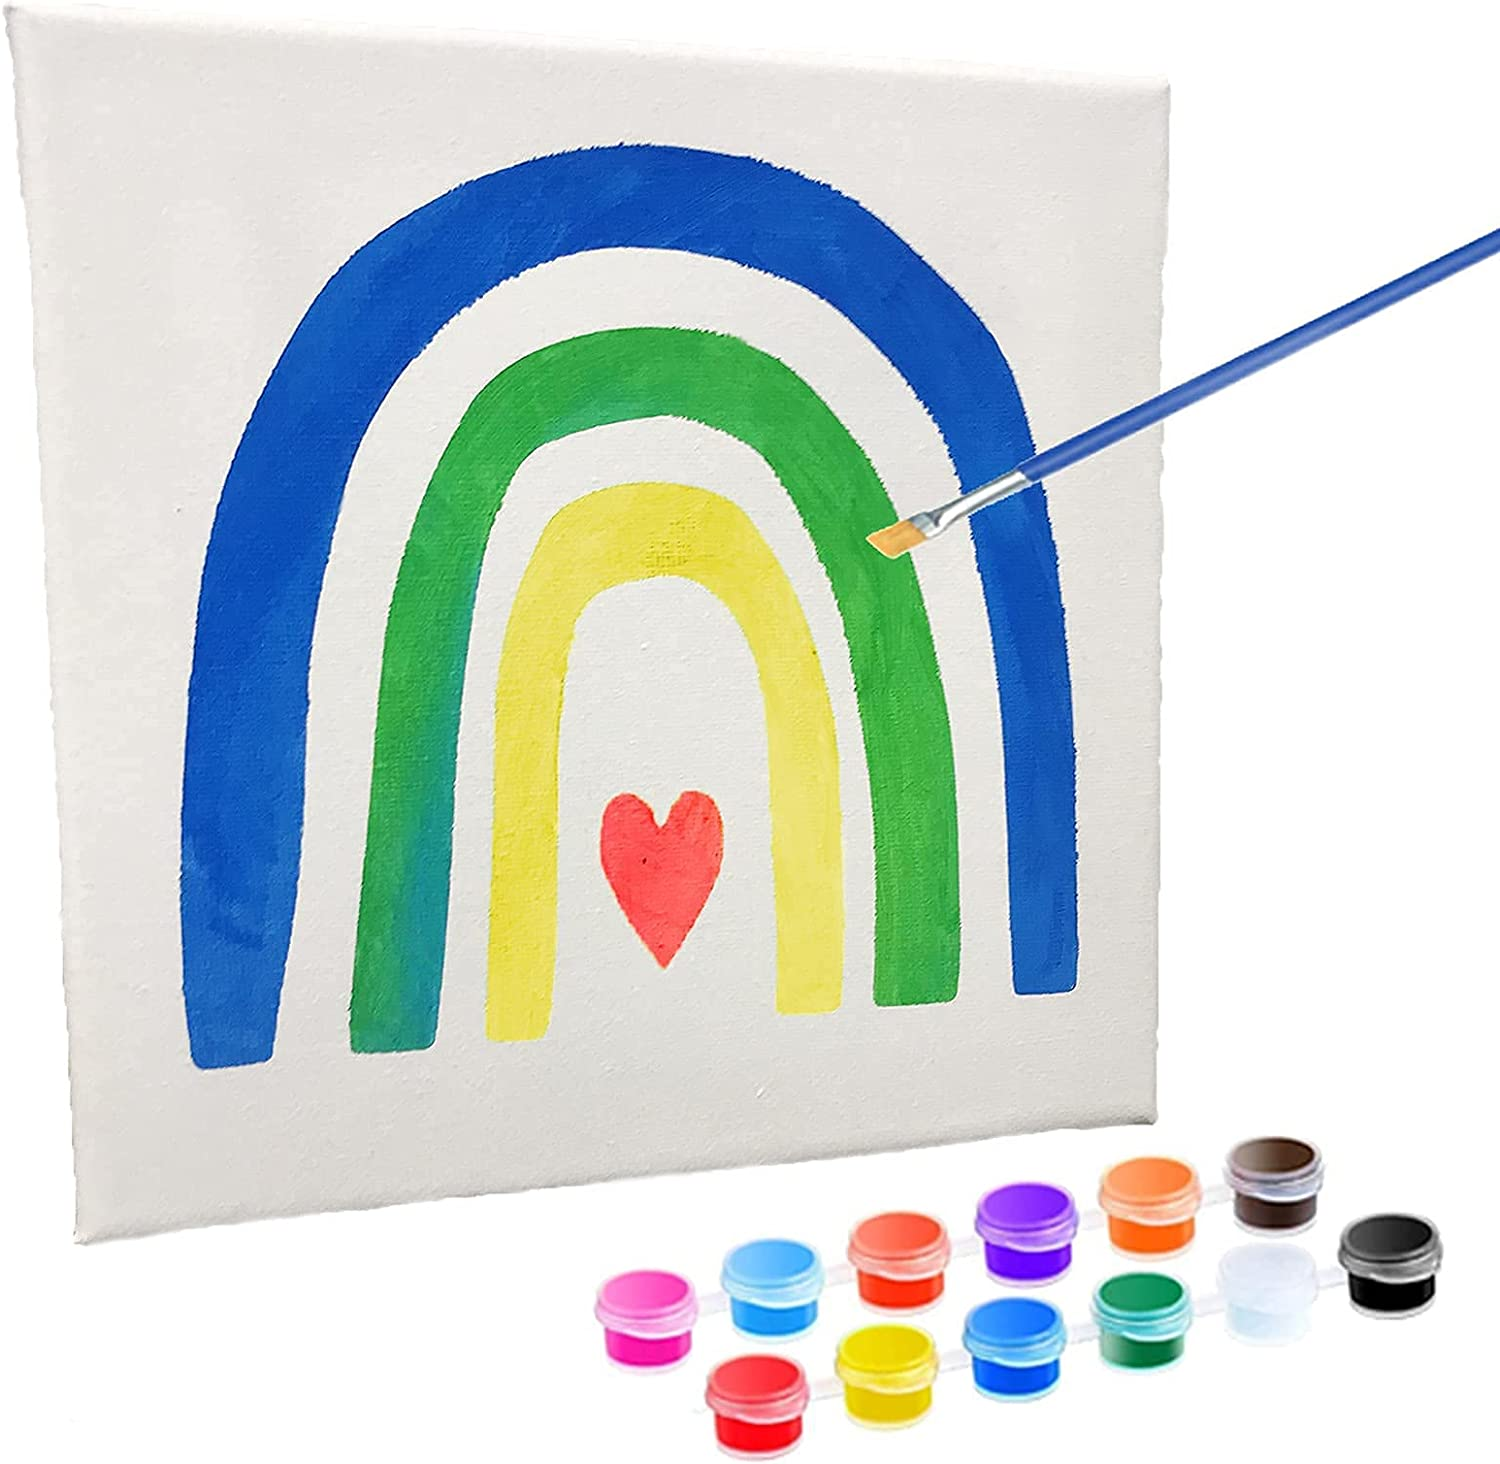 Max 71% OFF AMINORD Arts and Crafts Ranking TOP9 for Kids Ar Rainbow Canvas Painting DIY